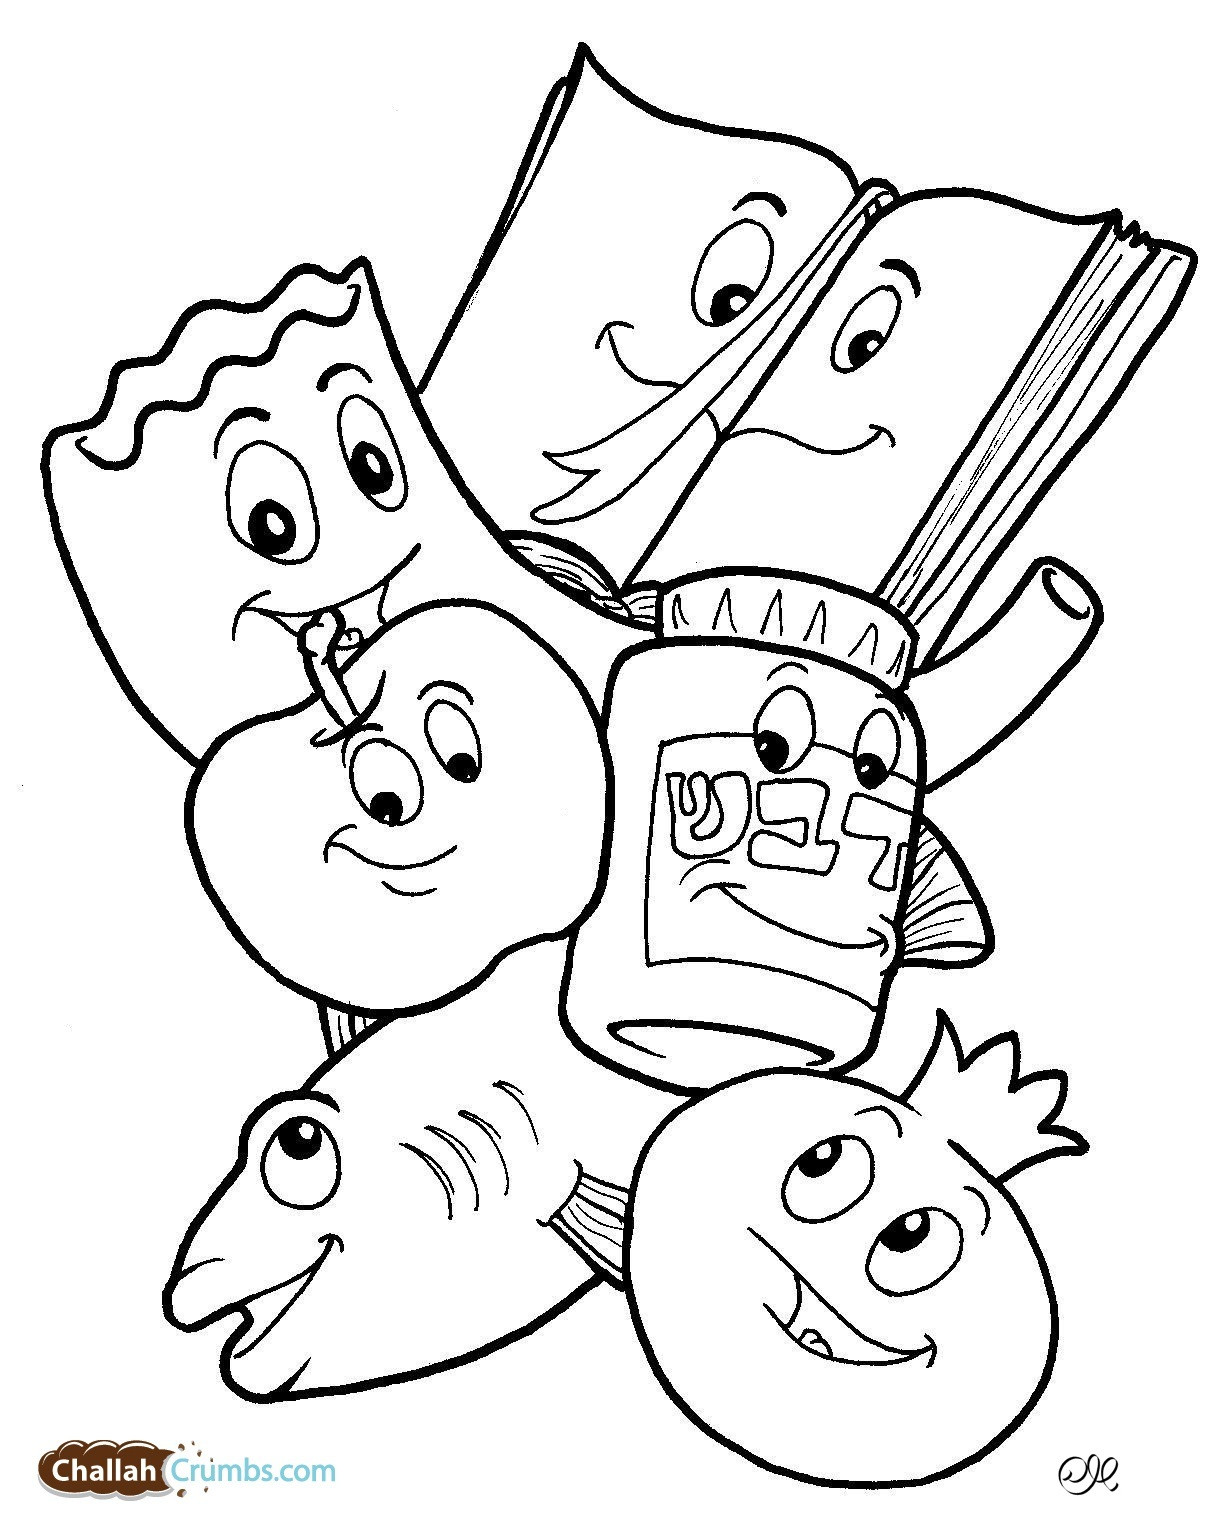 Rosh Hashanah Coloring Pages  14 printable pictures of rosh hashanah page Print Color